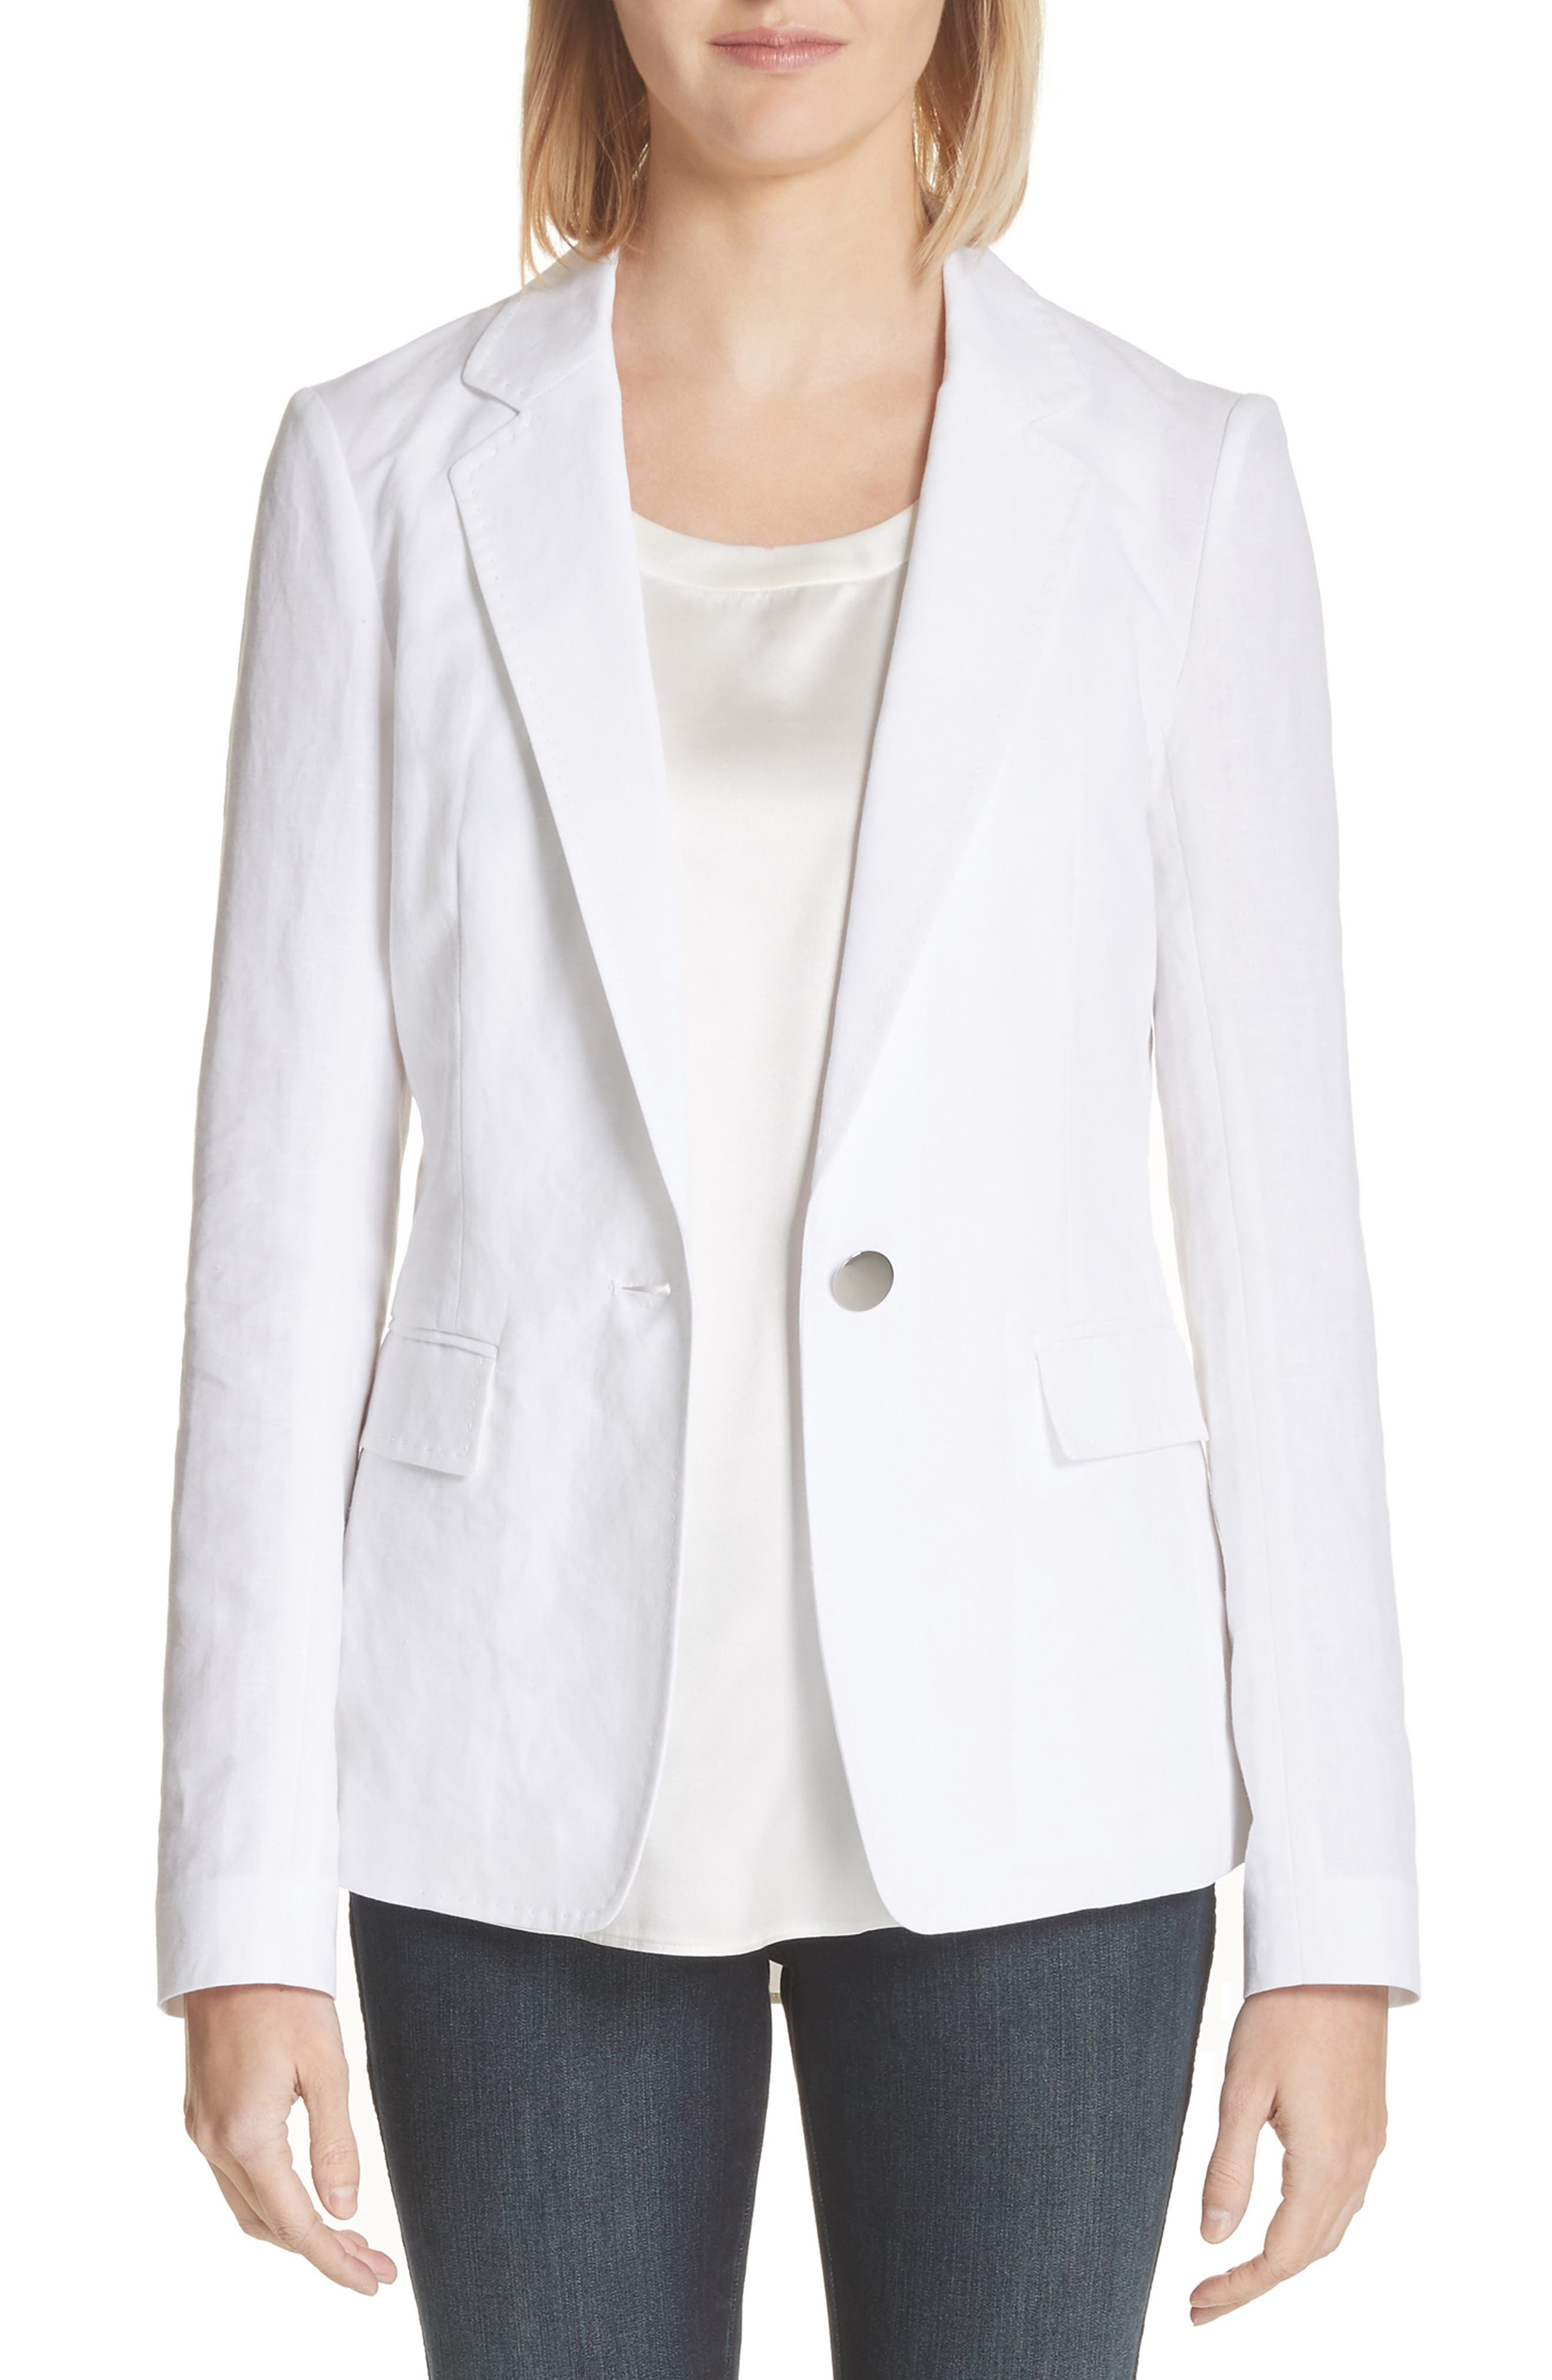 Lyndon Courtly Cotton & Linen Jacket,                             Main thumbnail 1, color,                             White